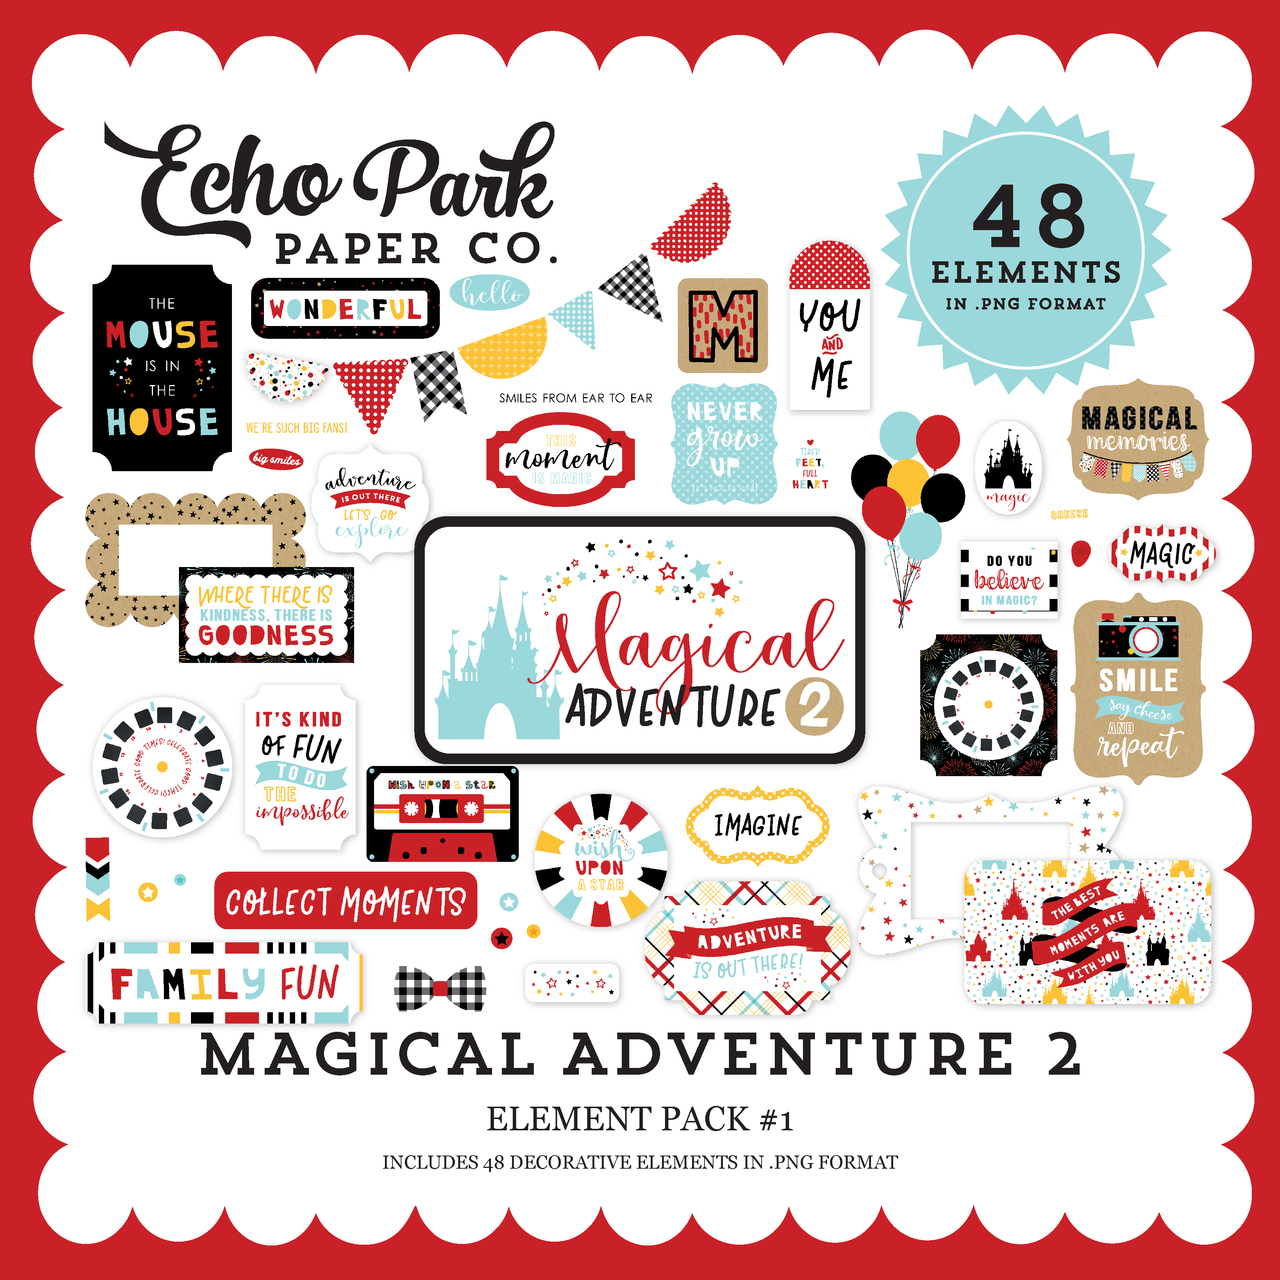 Magical Adventure 2 Element Pack #1